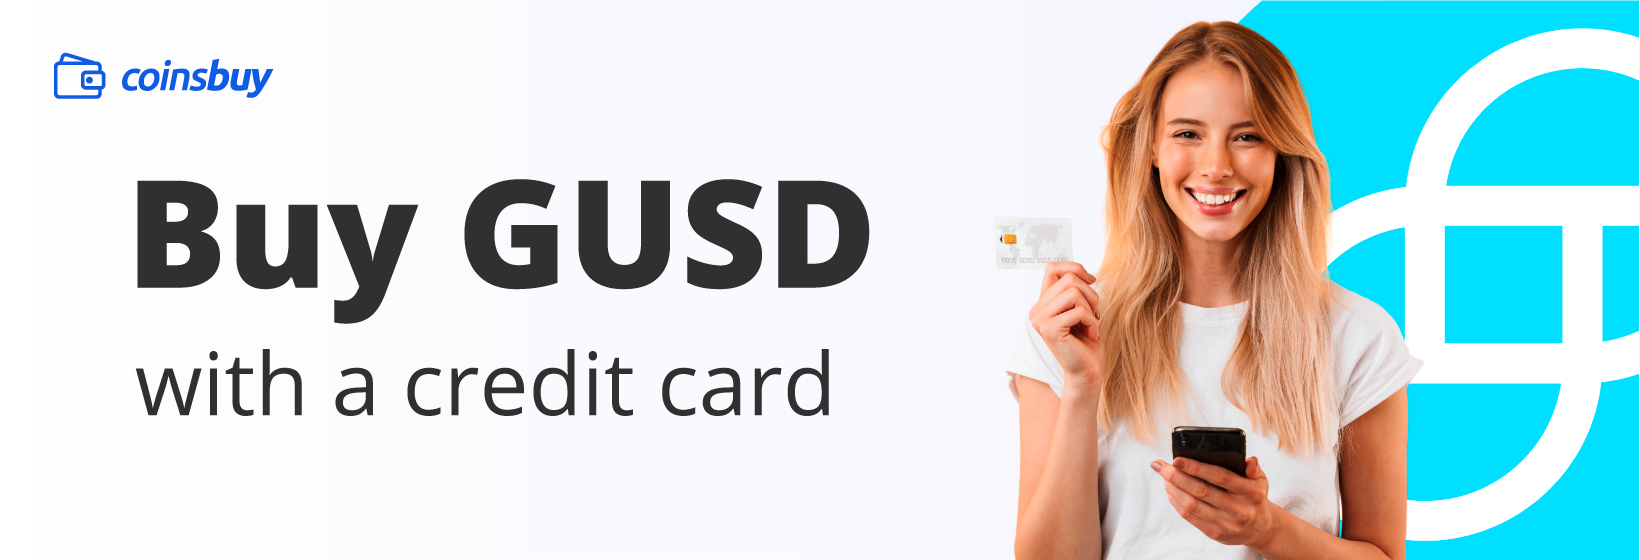 Buy GUSD with credit card